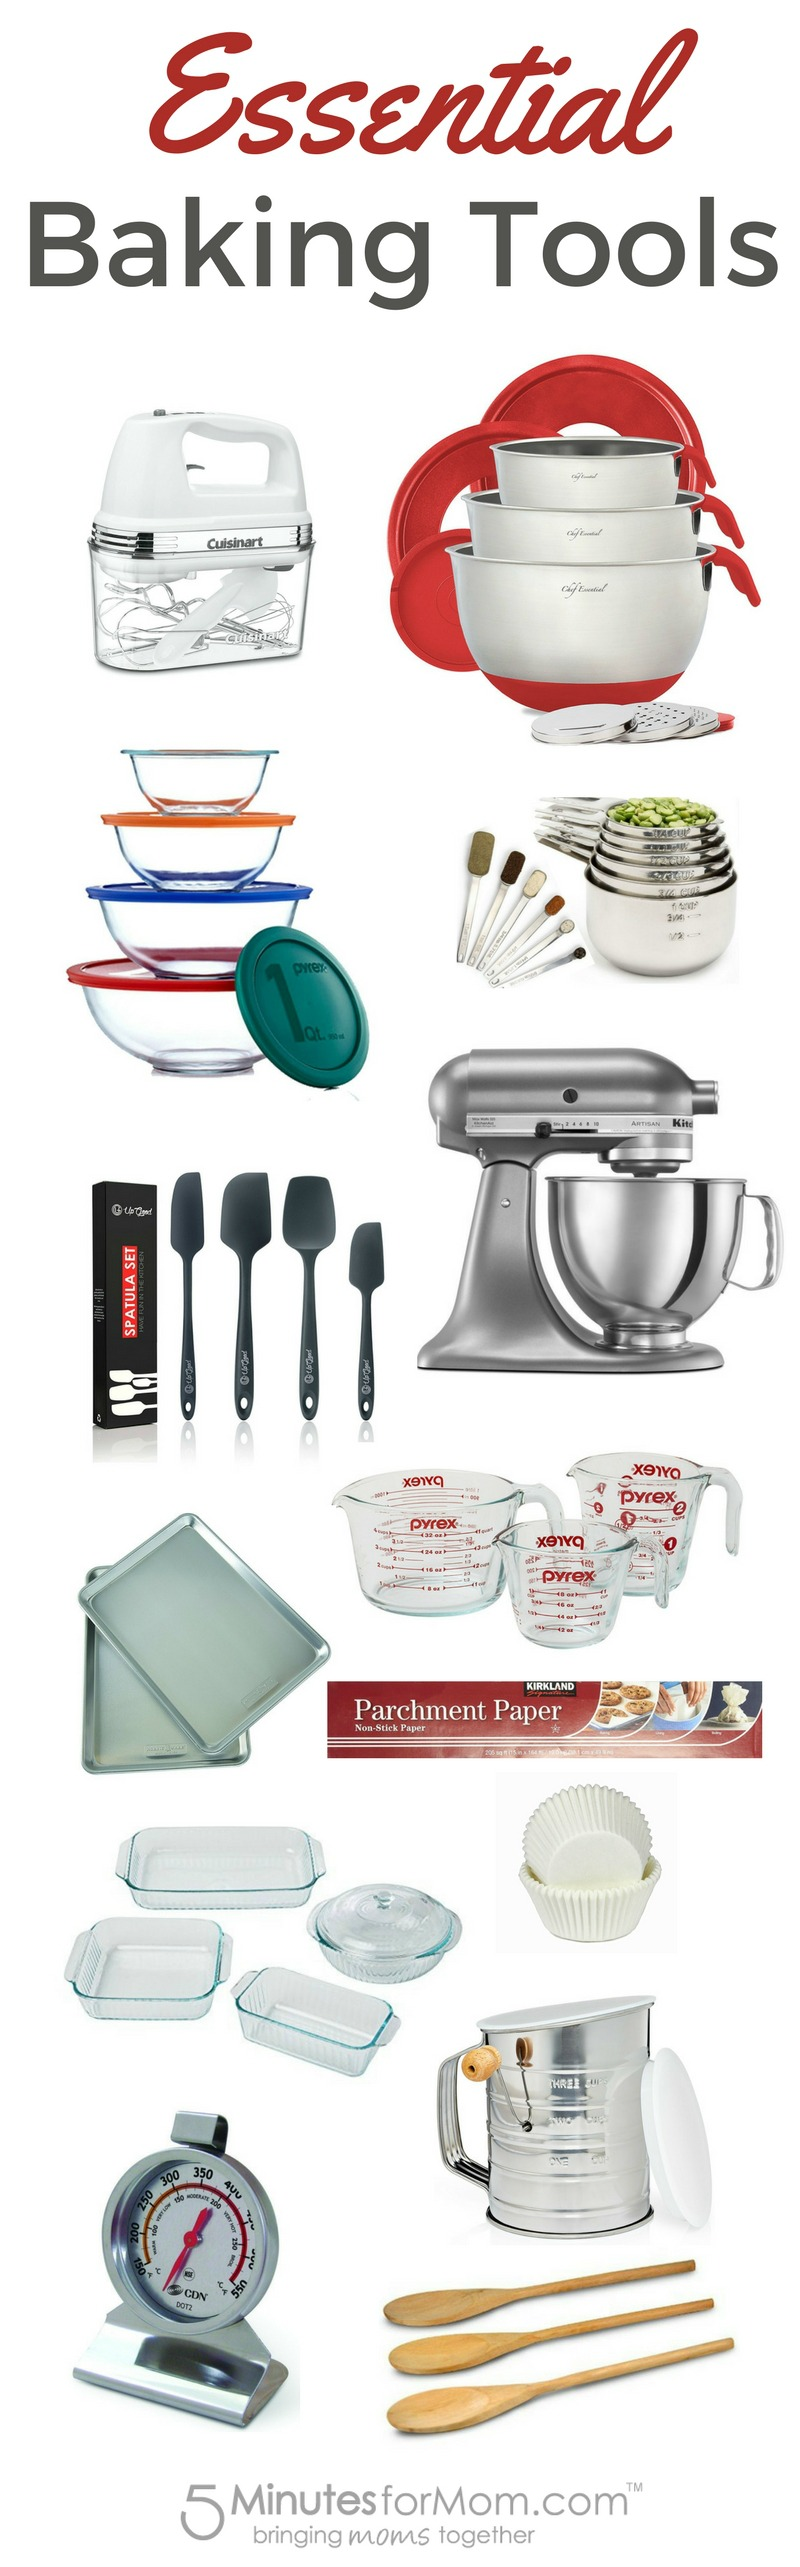 Essential Baking Tools And Equipment Baking Tools Tools And